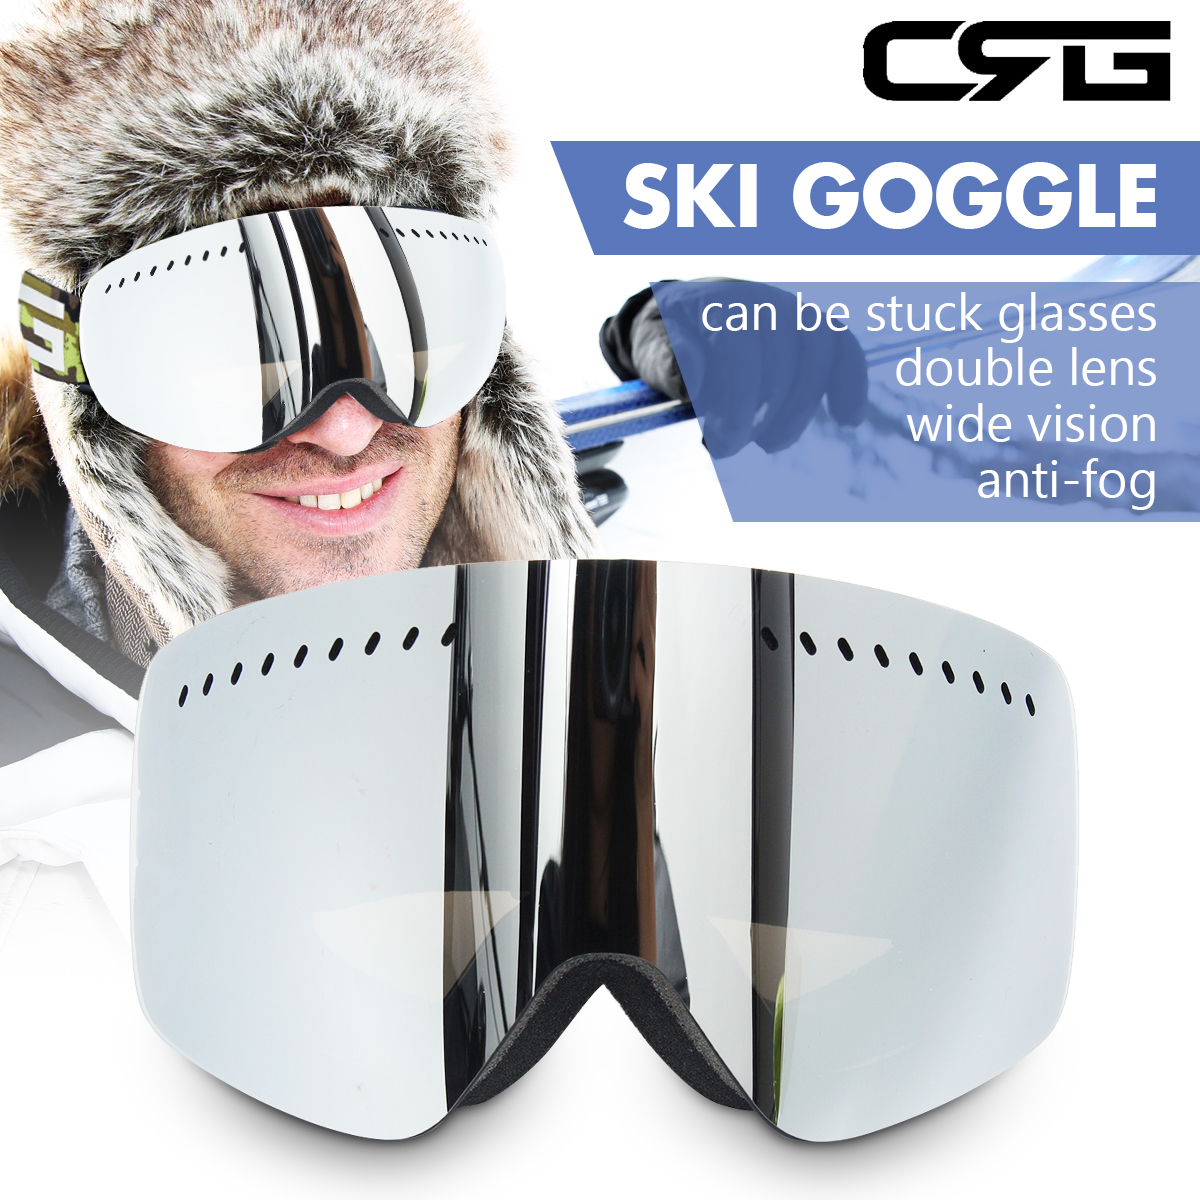 Unisex Pro Snow Sport Skiing Goggles Snowboard Double Lens Anti-fog UV400 Glasses